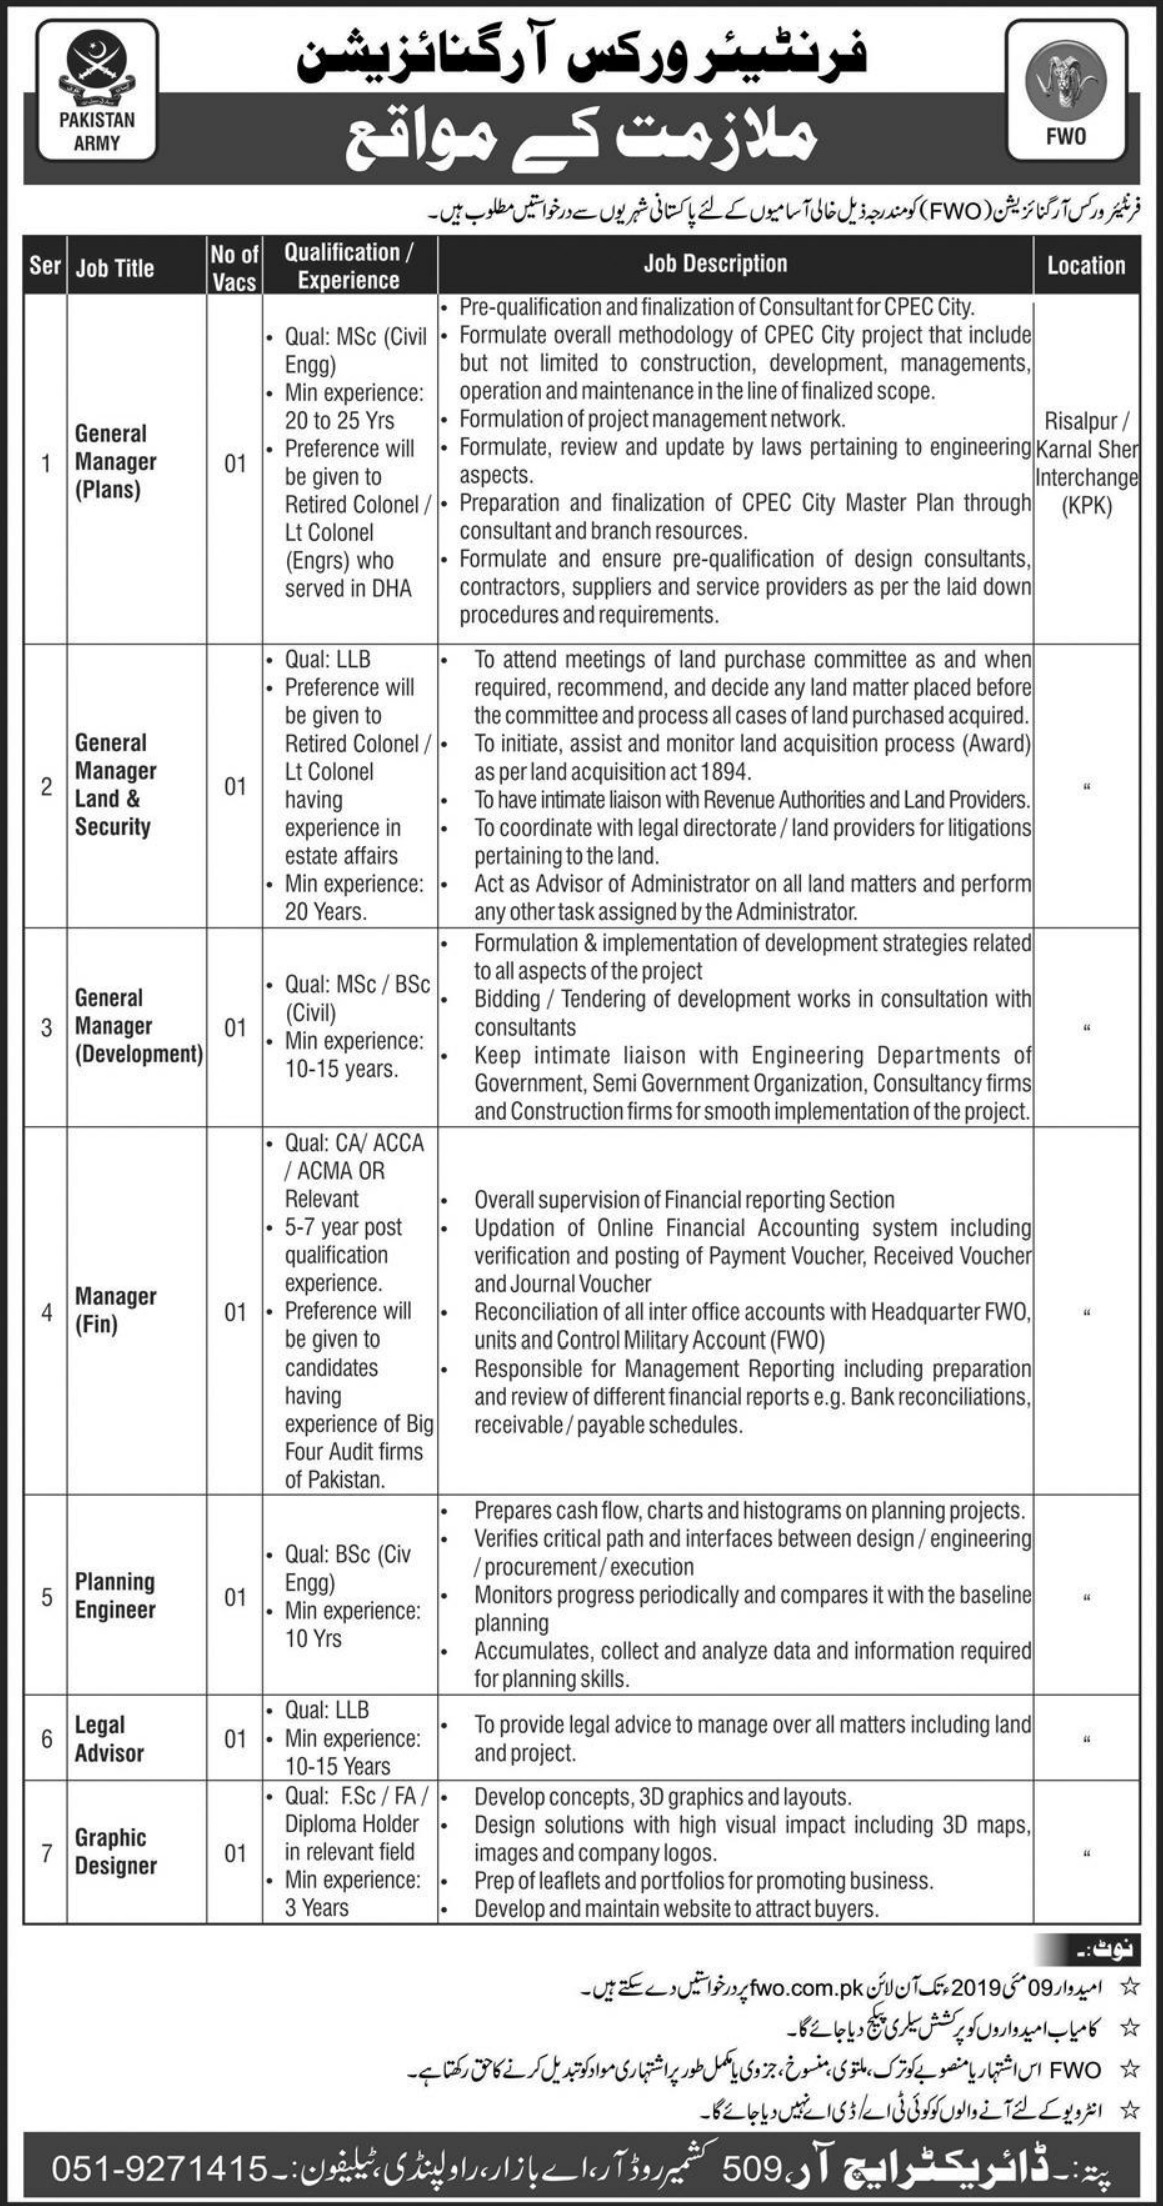 Frontier Works Organization FWO Jobs 2019 Latest